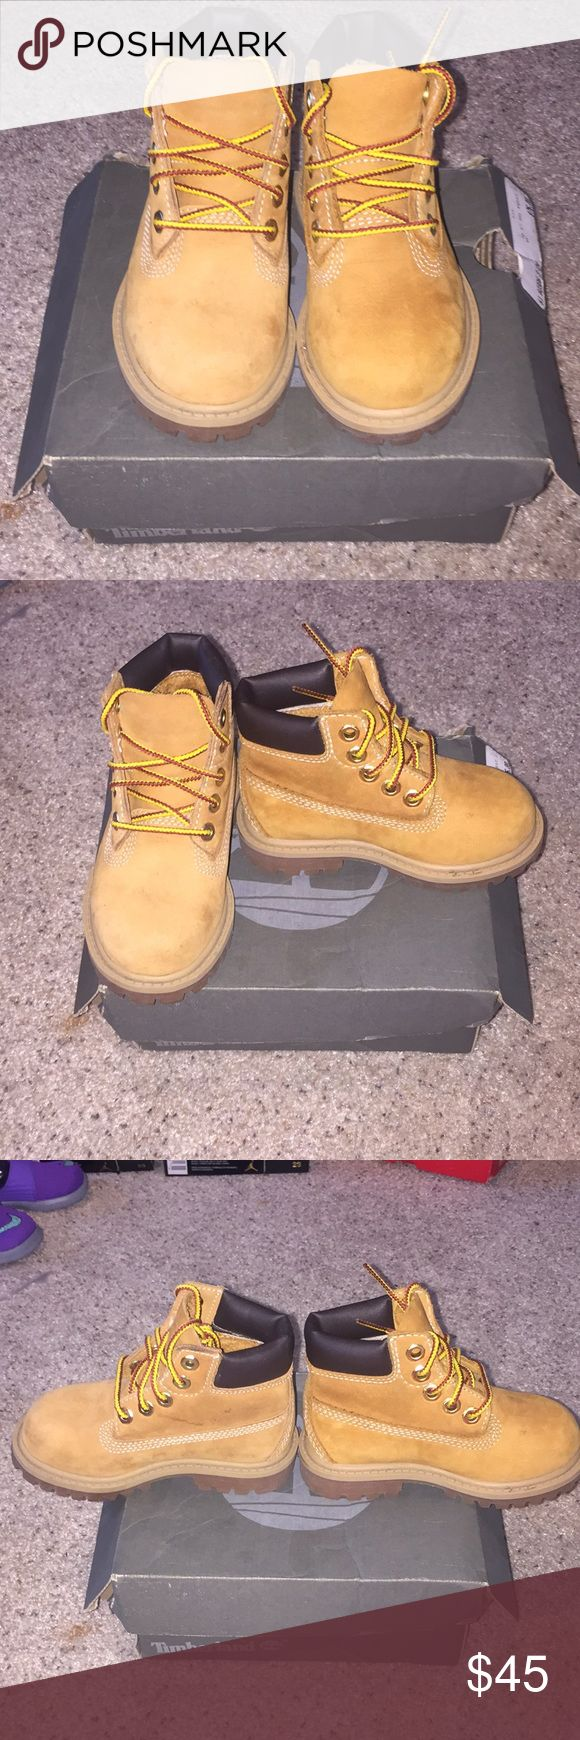 Kids Timberland Boots Timberland boots size 6 wheat, really good condition. Comes with box Timberland Shoes Boots